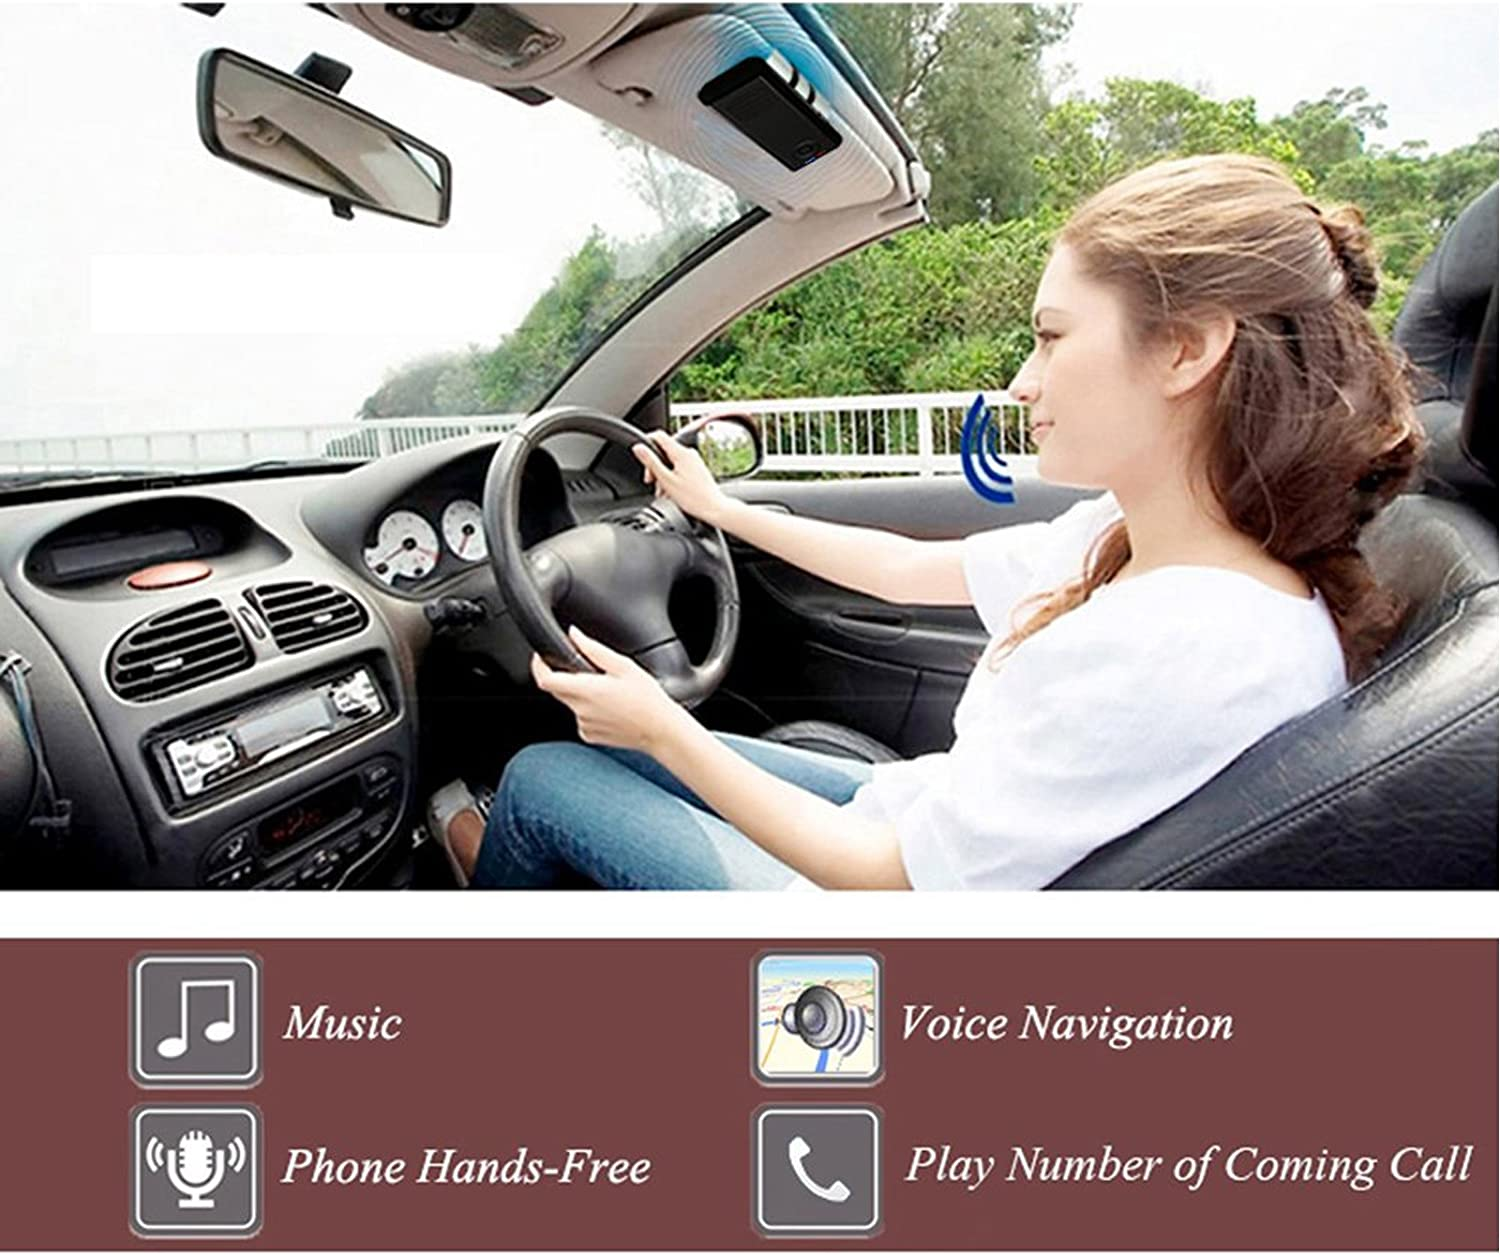 Car Speakerphone TEASTAR Bluetooth in-Car Speakerphone Handsfree with Mic Multipoint Bluetooth Wireless Sun Visor Car Kit with Car Charger Clip for Apple iPhone iPad Samsung HTC LG